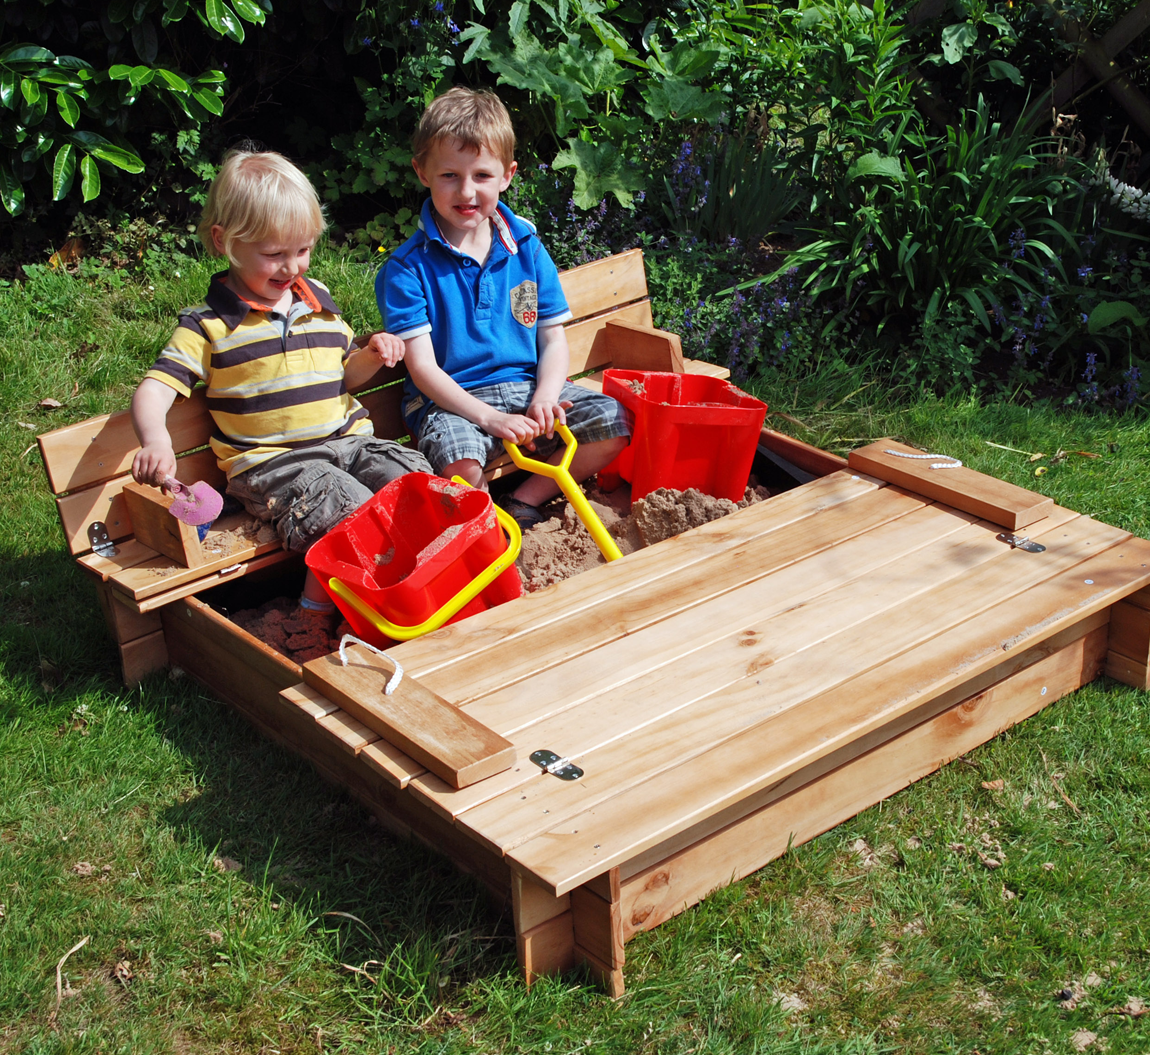 Action Wooden Sandpit Garden Games Square Wooden Sandpit